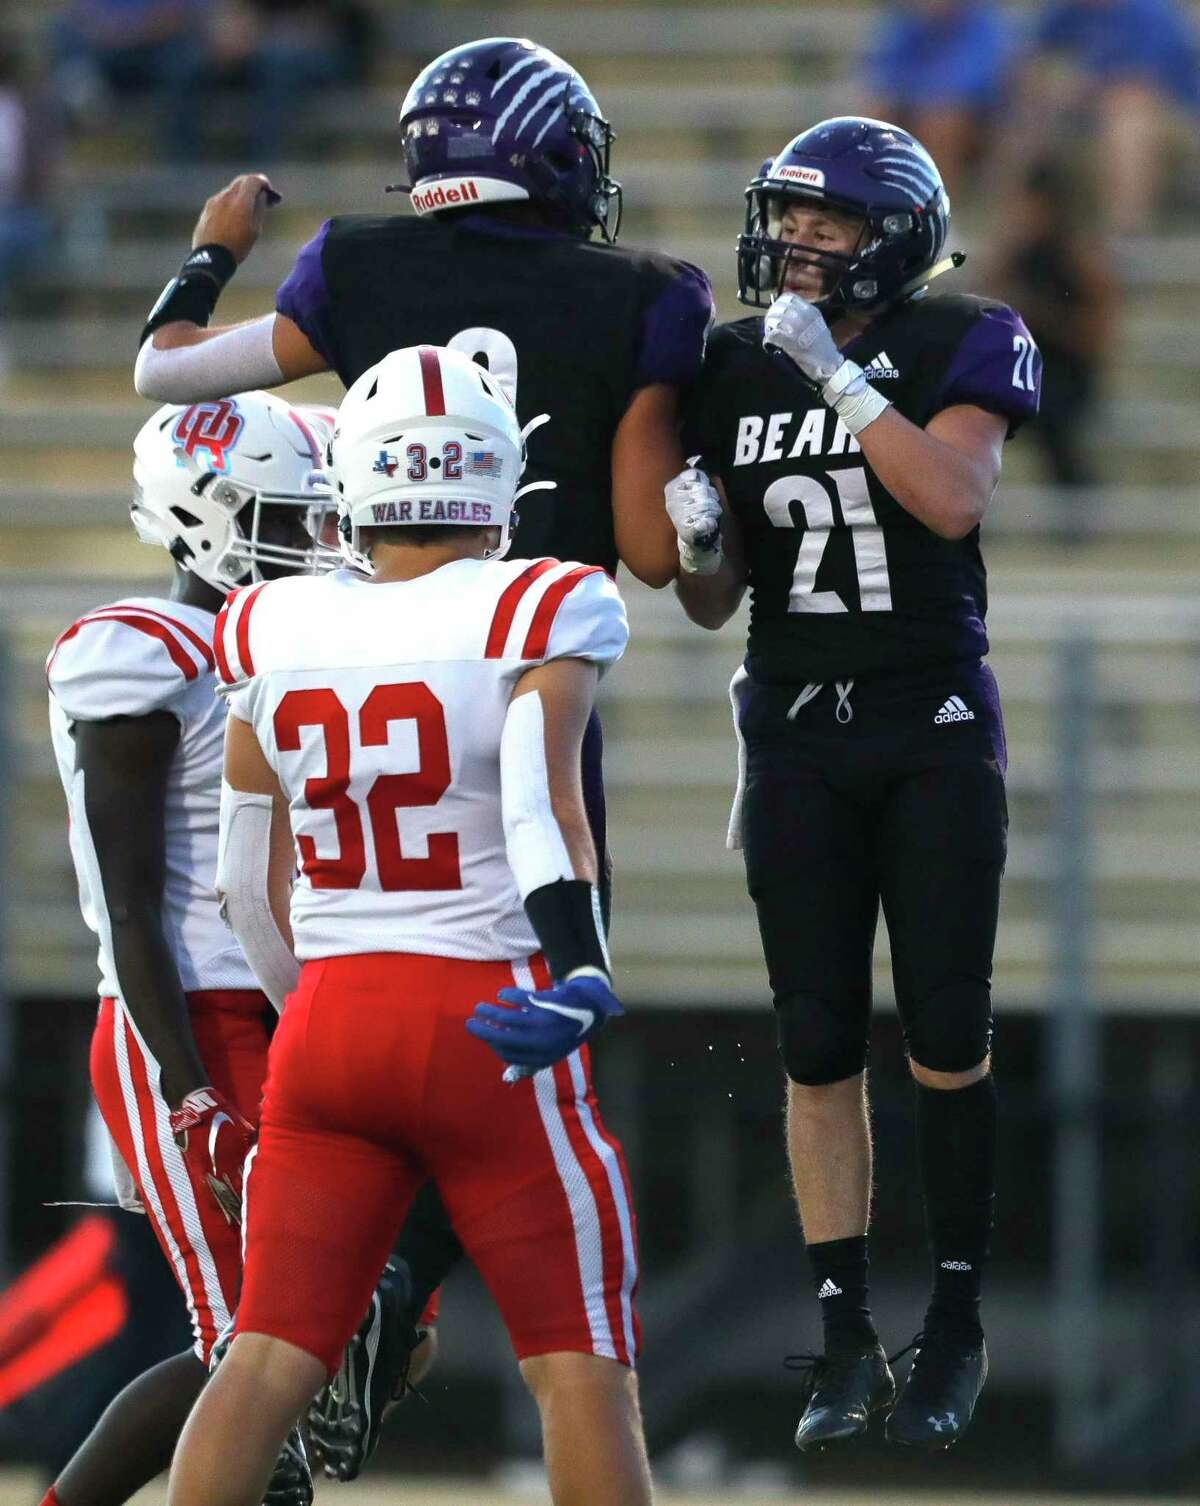 Montgomery wide receiver Justin Herman (21) celebrates with quarterback Brock Bolfing (9) after the two connected for a 24-yard touchdown pass during the first quarter of a non-district high school football game, Thursday, Sept. 23, 2021, in Montgomery.